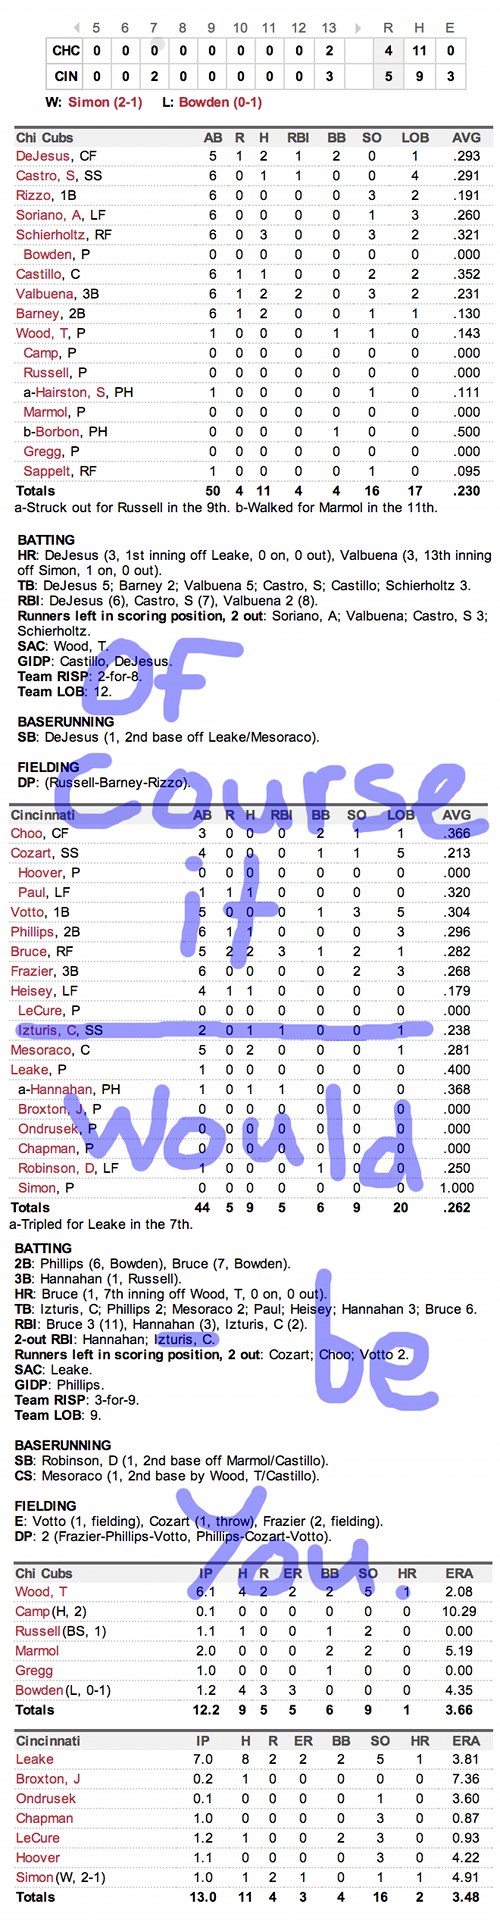 Enhanced Box Score: Cubs 4, Reds 5 – April 22, 2013